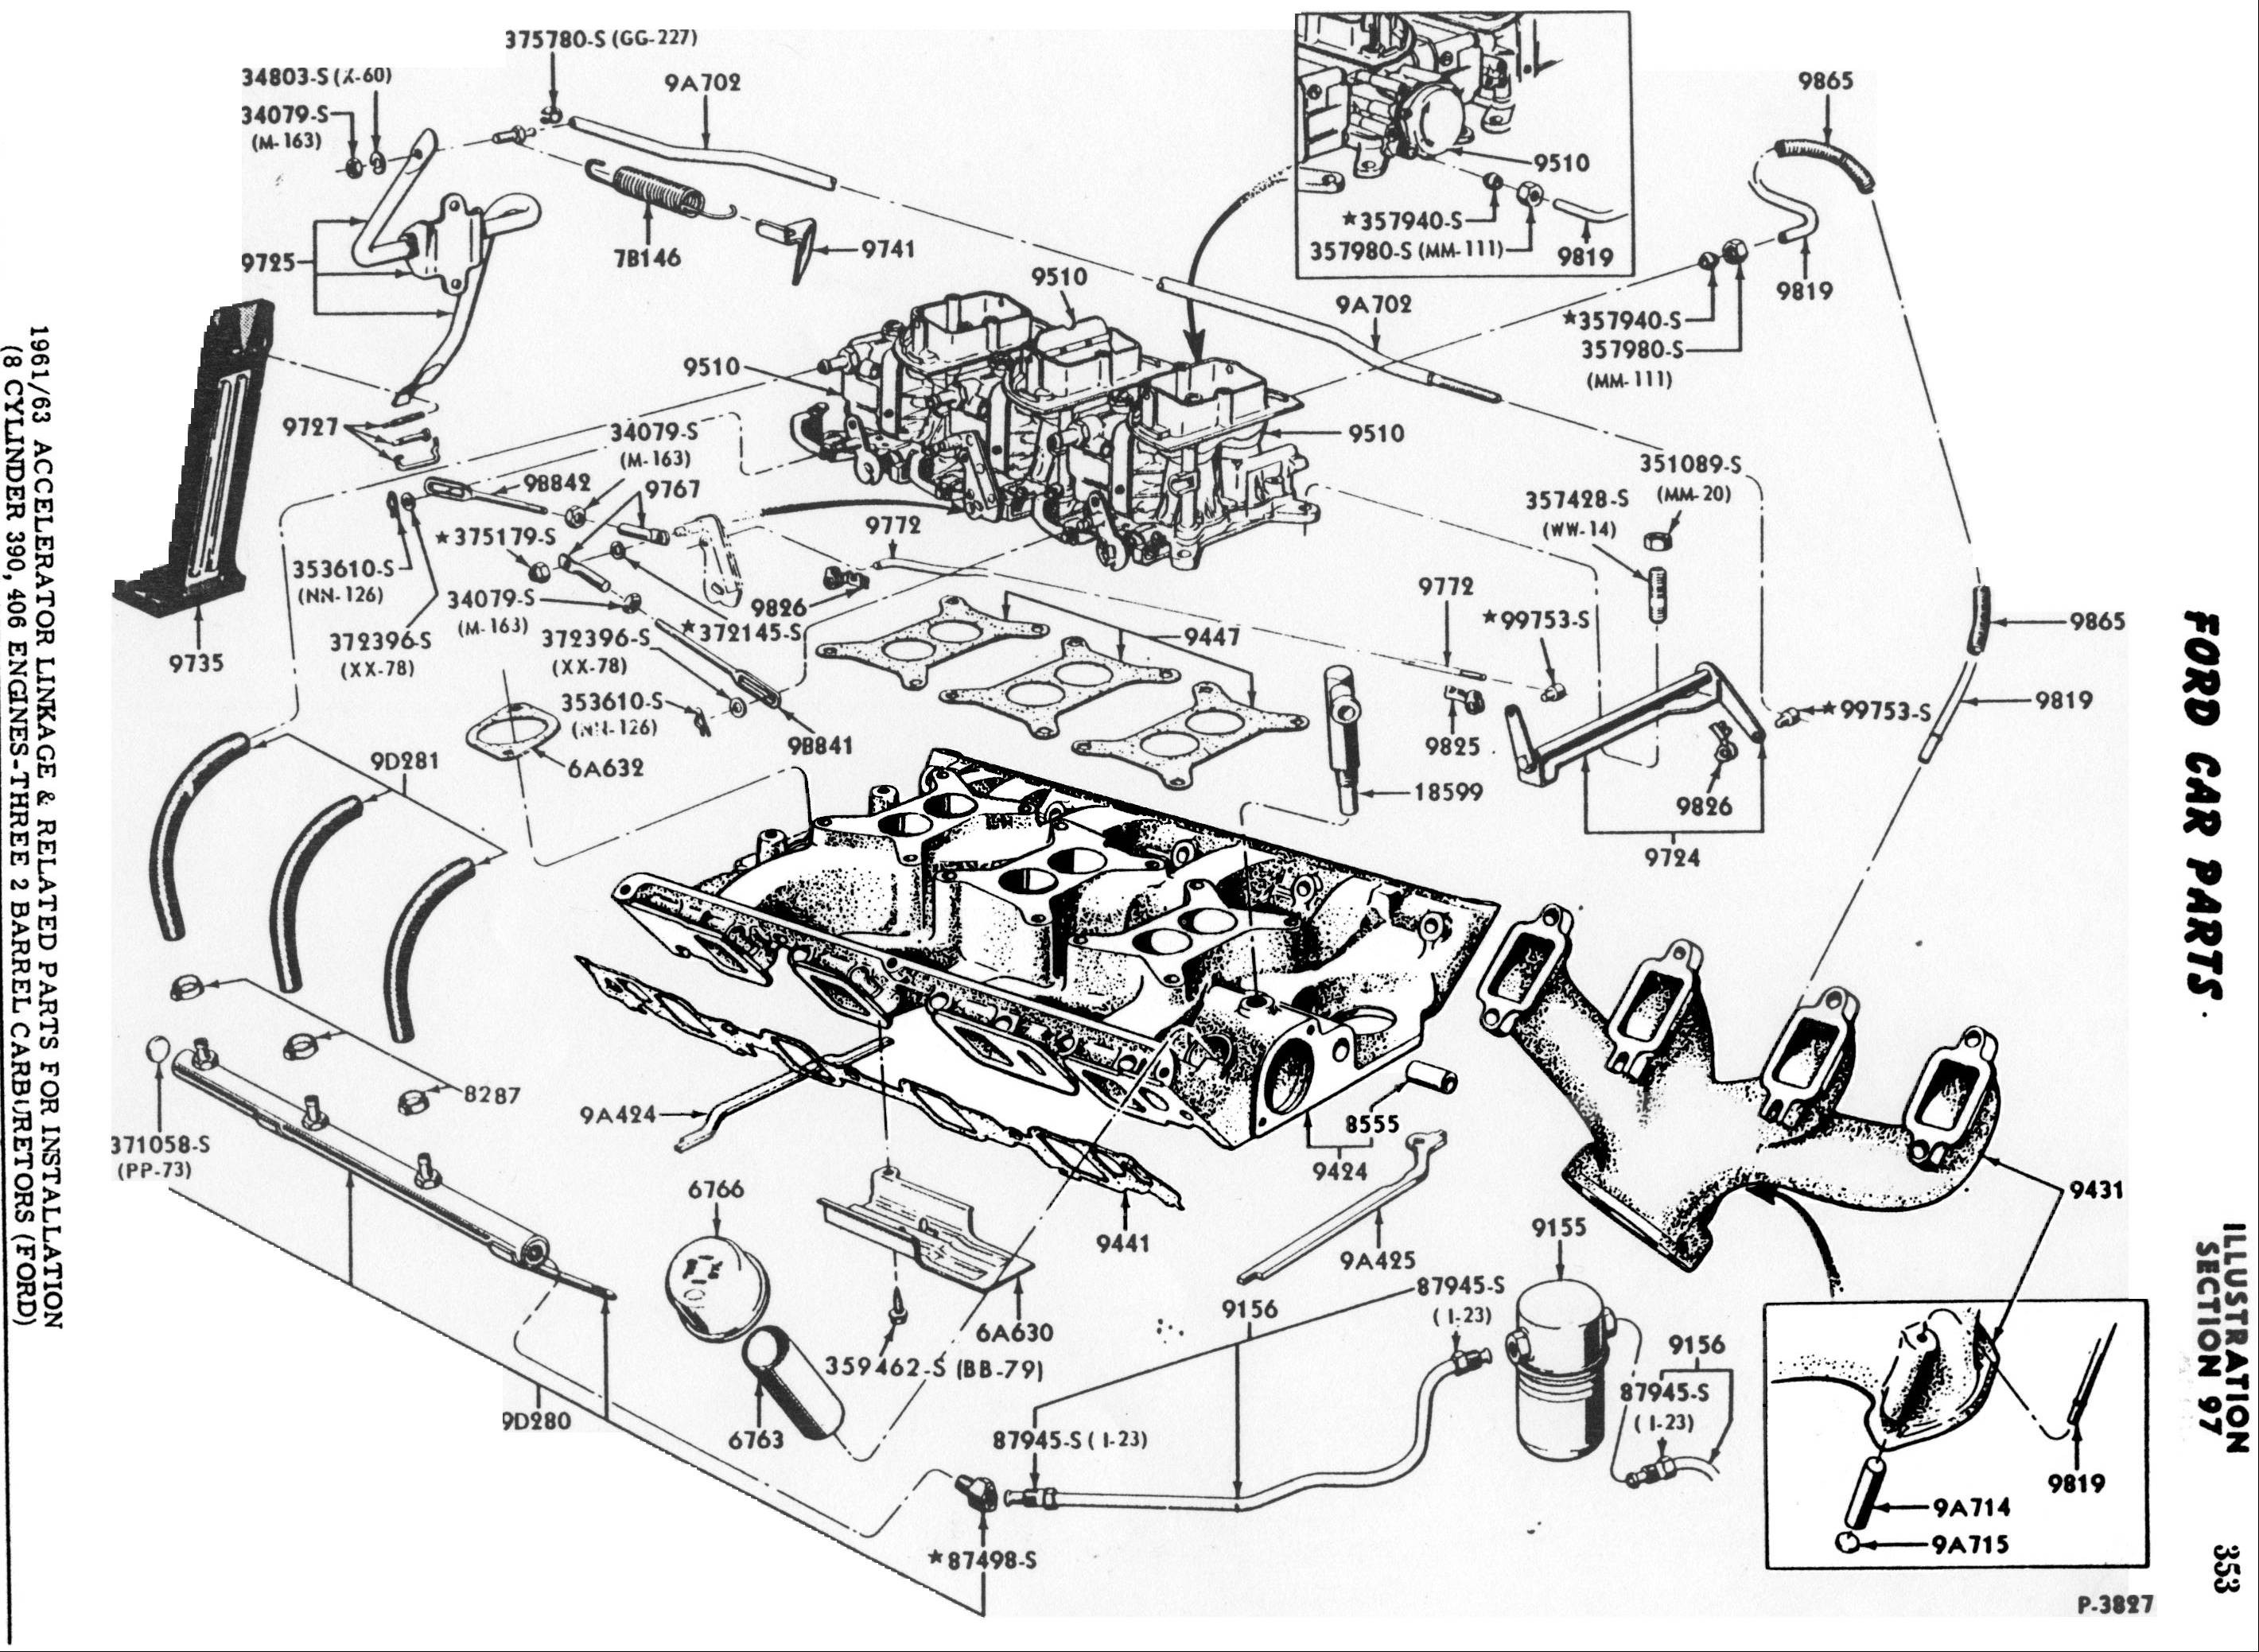 5741280 Ford 390 Spark Plug Wiring Diagram | Wiring Resources on lincoln town car spark plug wiring diagram, dodge spark plug wiring diagram, cadillac escalade spark plug wiring diagram, subaru forester spark plug wiring diagram, ford f150 spark plug wire, cadillac deville spark plug wiring diagram, chevrolet trailblazer spark plug wiring diagram, toyota sienna spark plug wiring diagram, toyota tacoma spark plug wiring diagram,